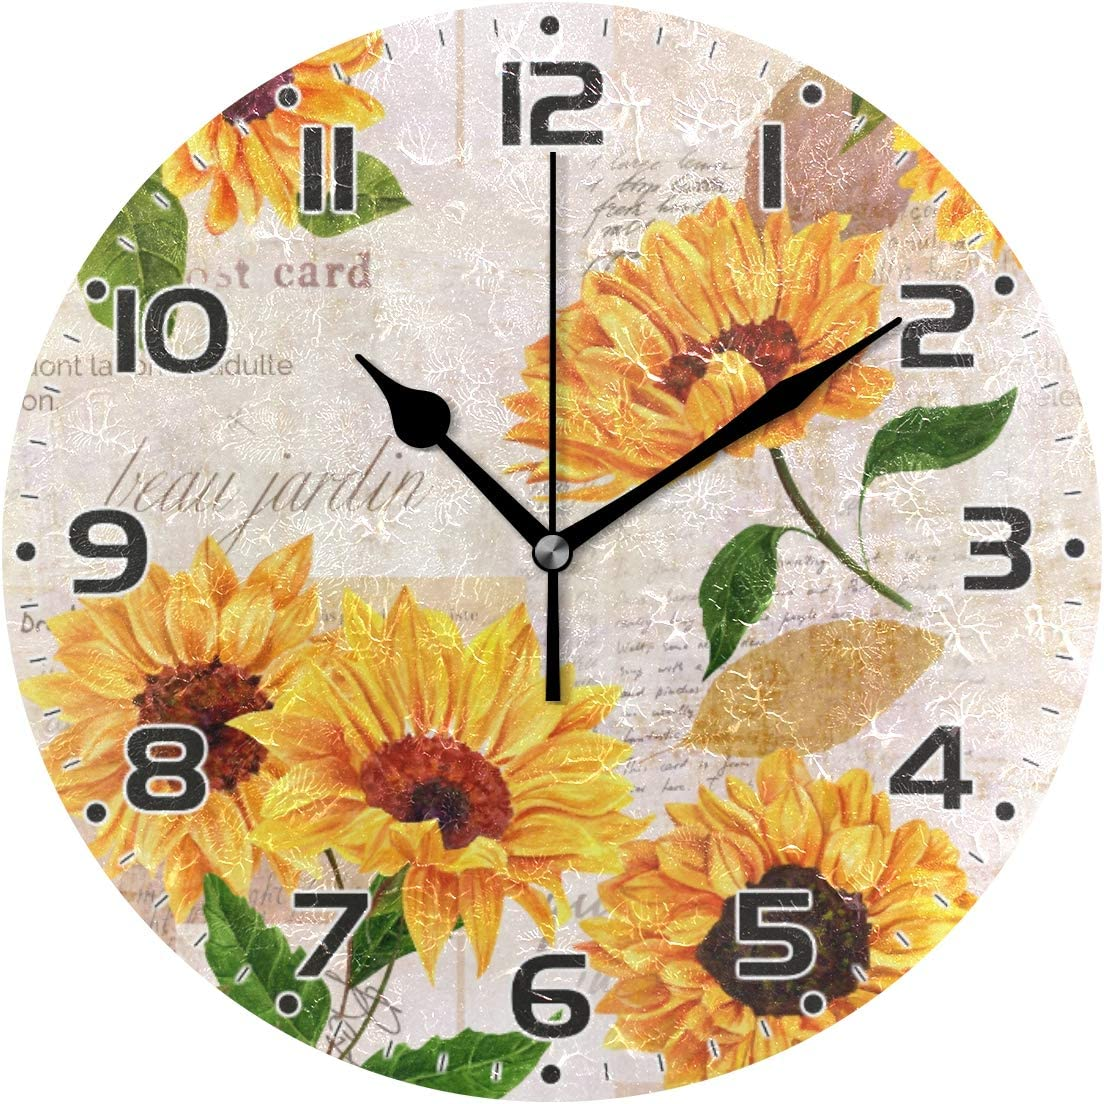 Qilmy Sunflower Wall Oklahoma City Mall Clock Non Decorative Art Rou Silent Ticking Direct sale of manufacturer